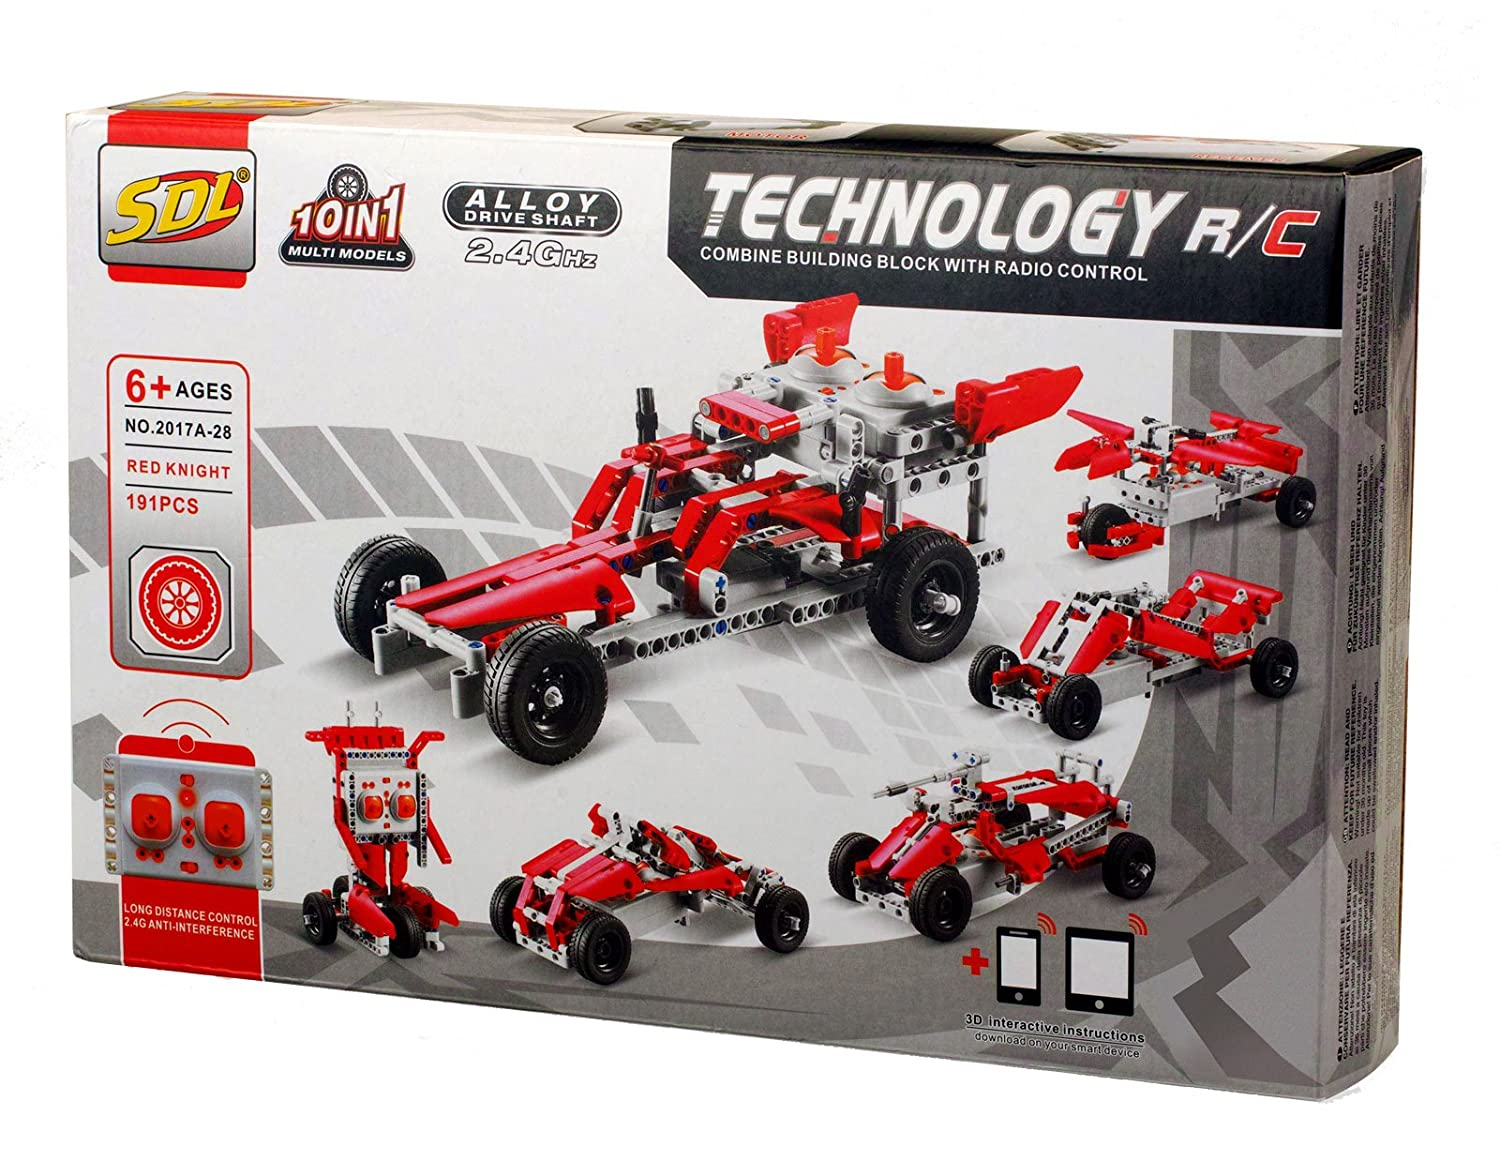 Bo Toys R/C 10 in 1 Race Cars Building Bricks Radio Control Toy, 191 Pcs DIY Kit with USB Rechargeable Battery, Construction Build It Yourself Toys Review